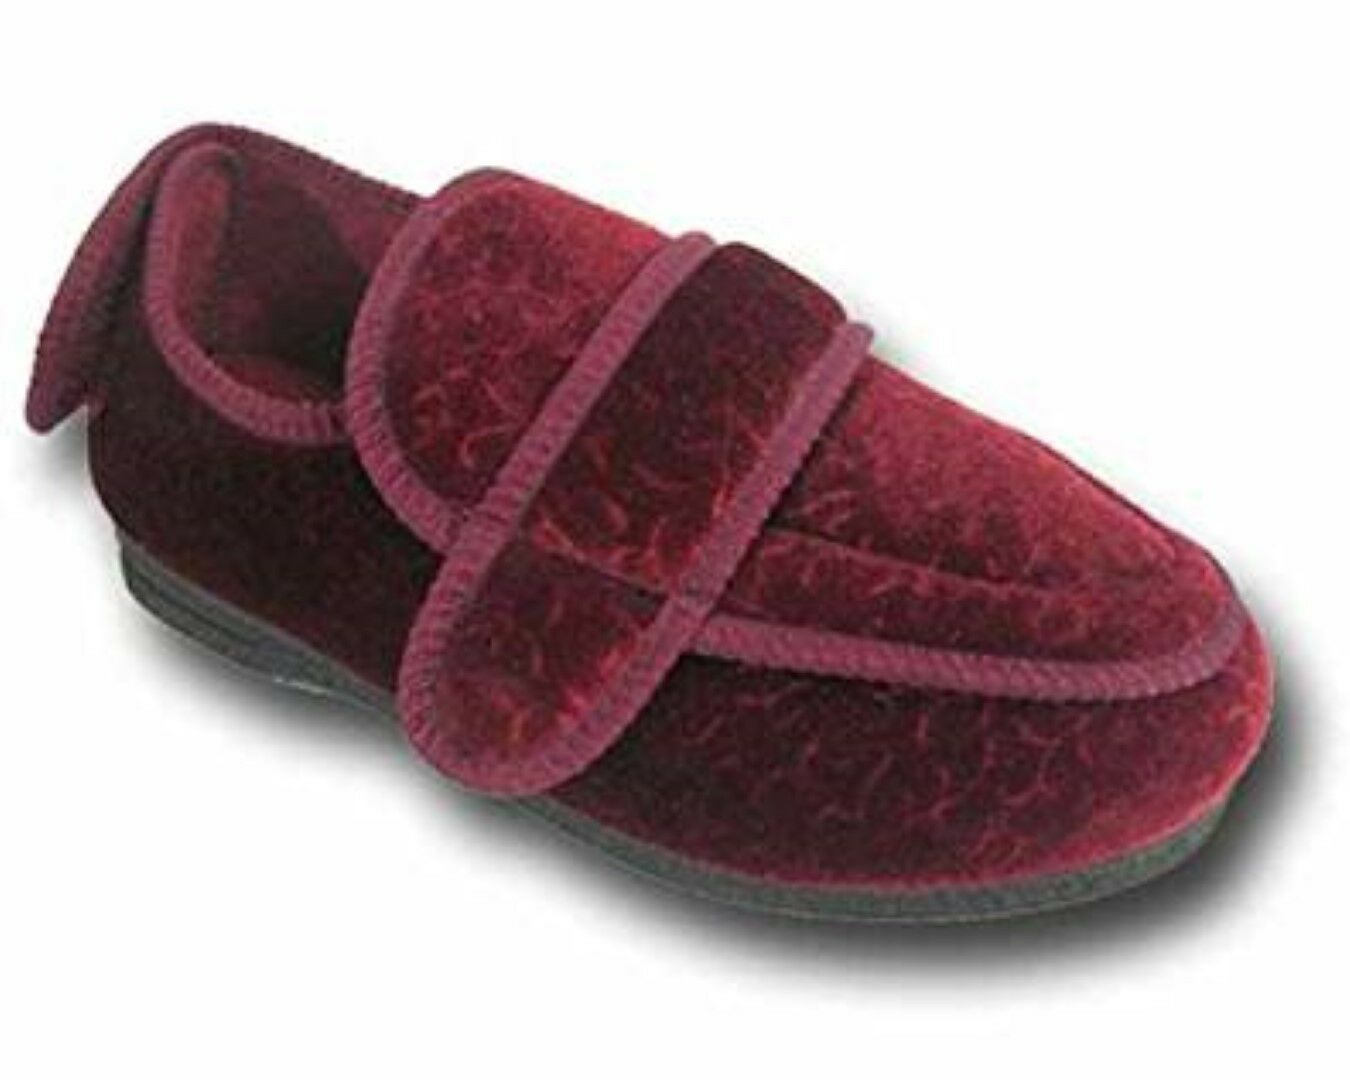 Coolers Cosy Comfort Washable  Orthopaedic Slippers UK 4 EU 37 NH07 11